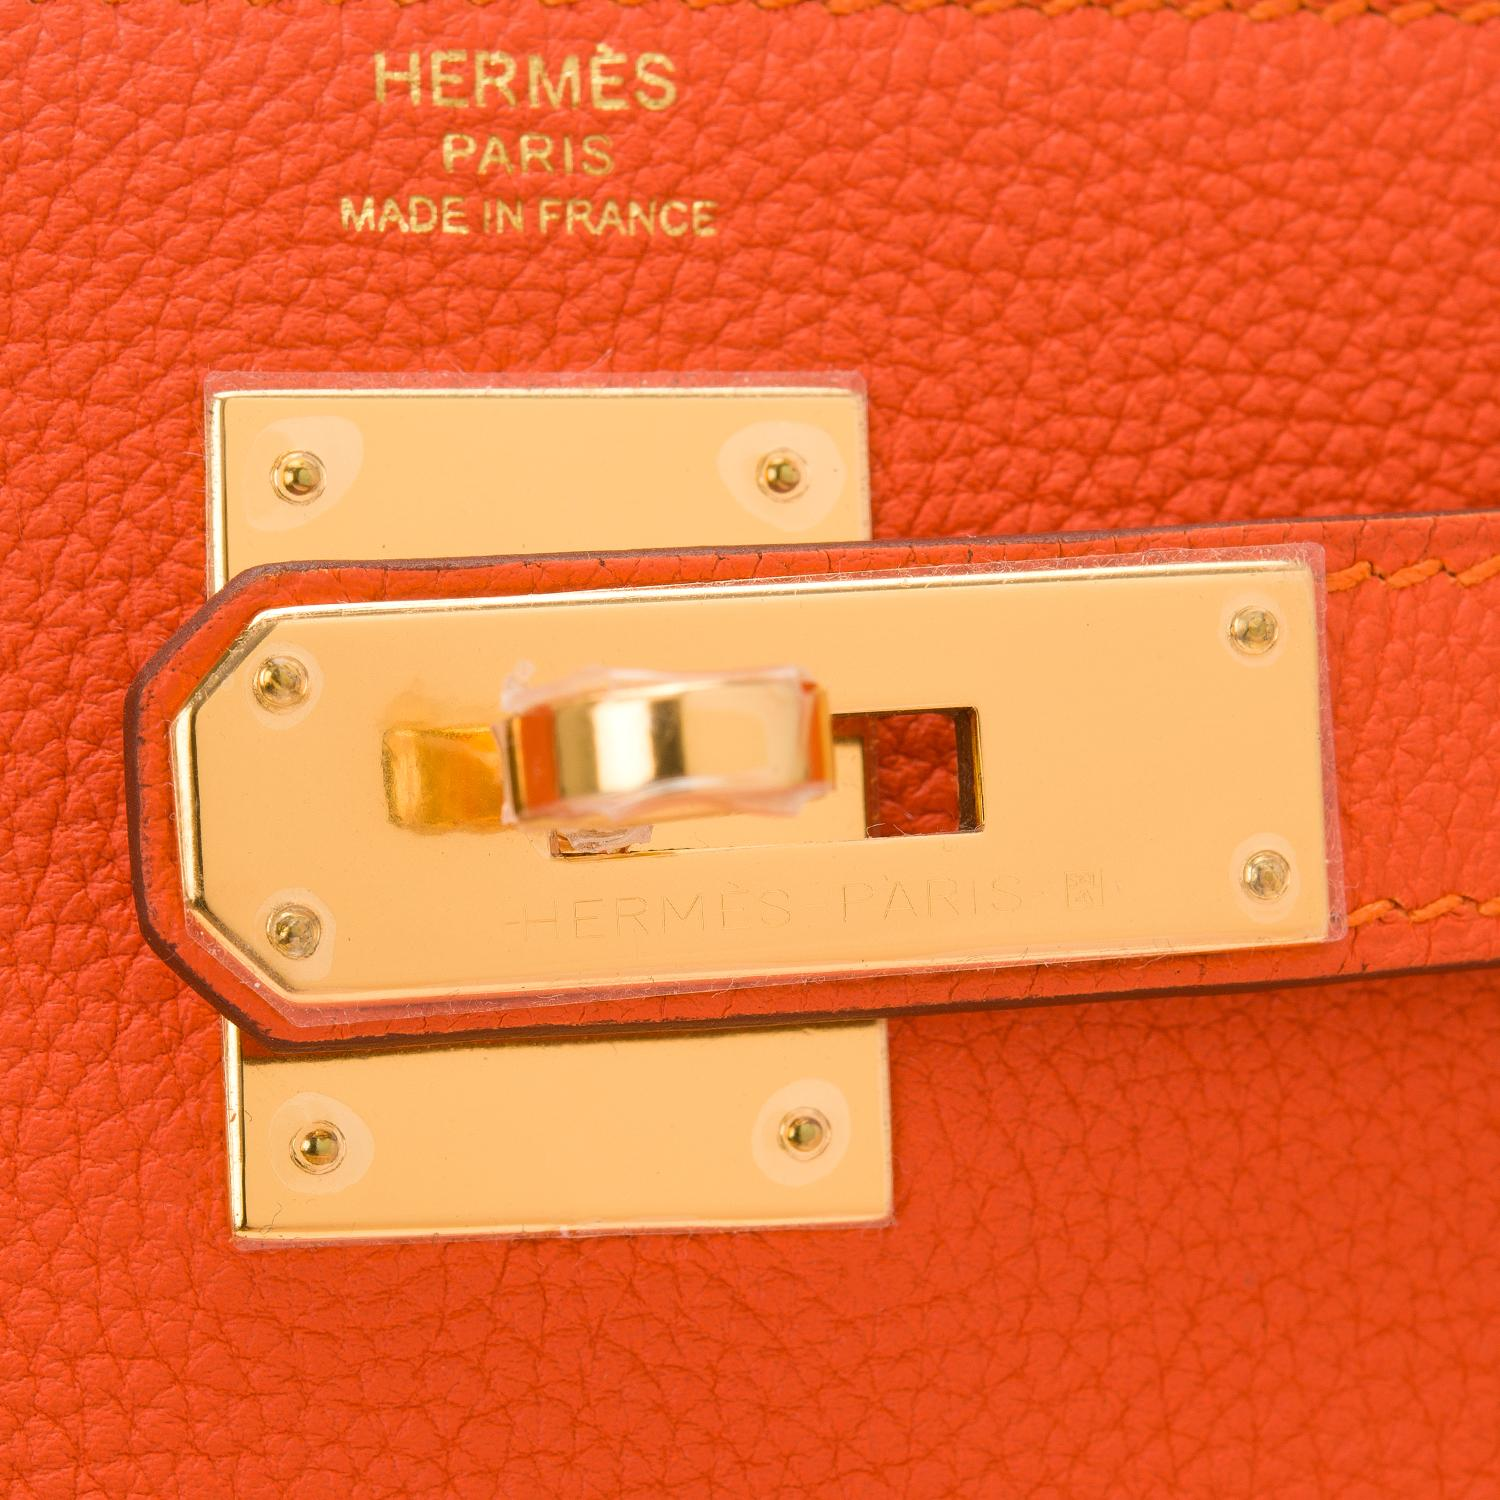 e85b9b2fc3d1e ... birkin bag with gold hardware d6576 81895  low price hermès kelly feu  togo retourne 28cm gold hardware orange leather satchel tradesy f9efd 56217